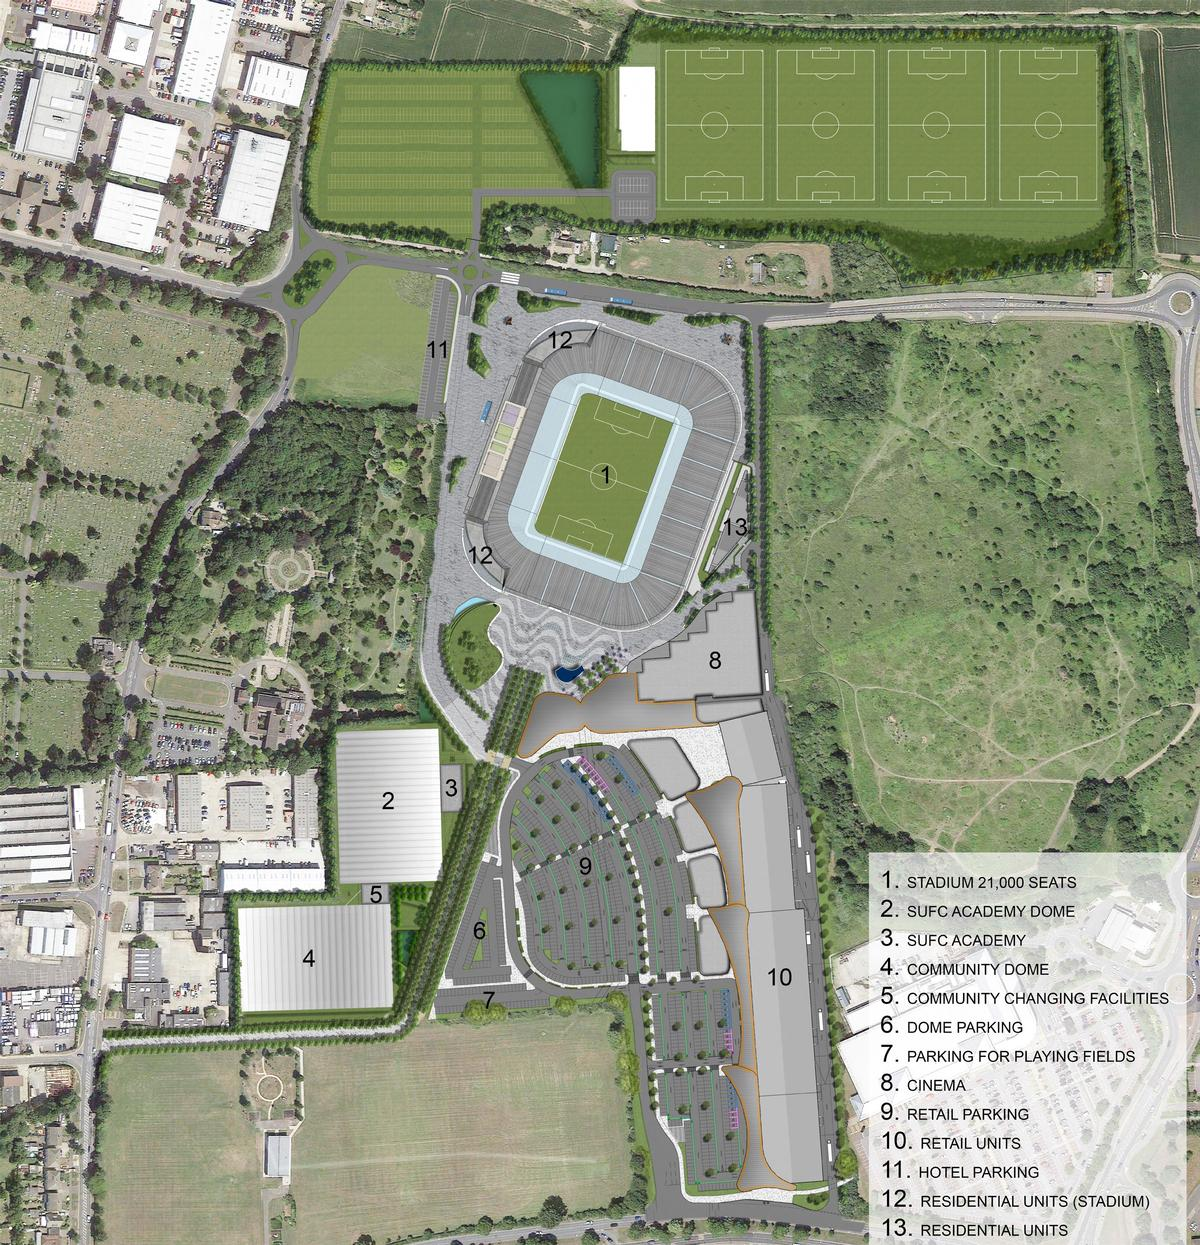 The plans include a 21,000-capacity stadium and a retail development with 12-screen cinema